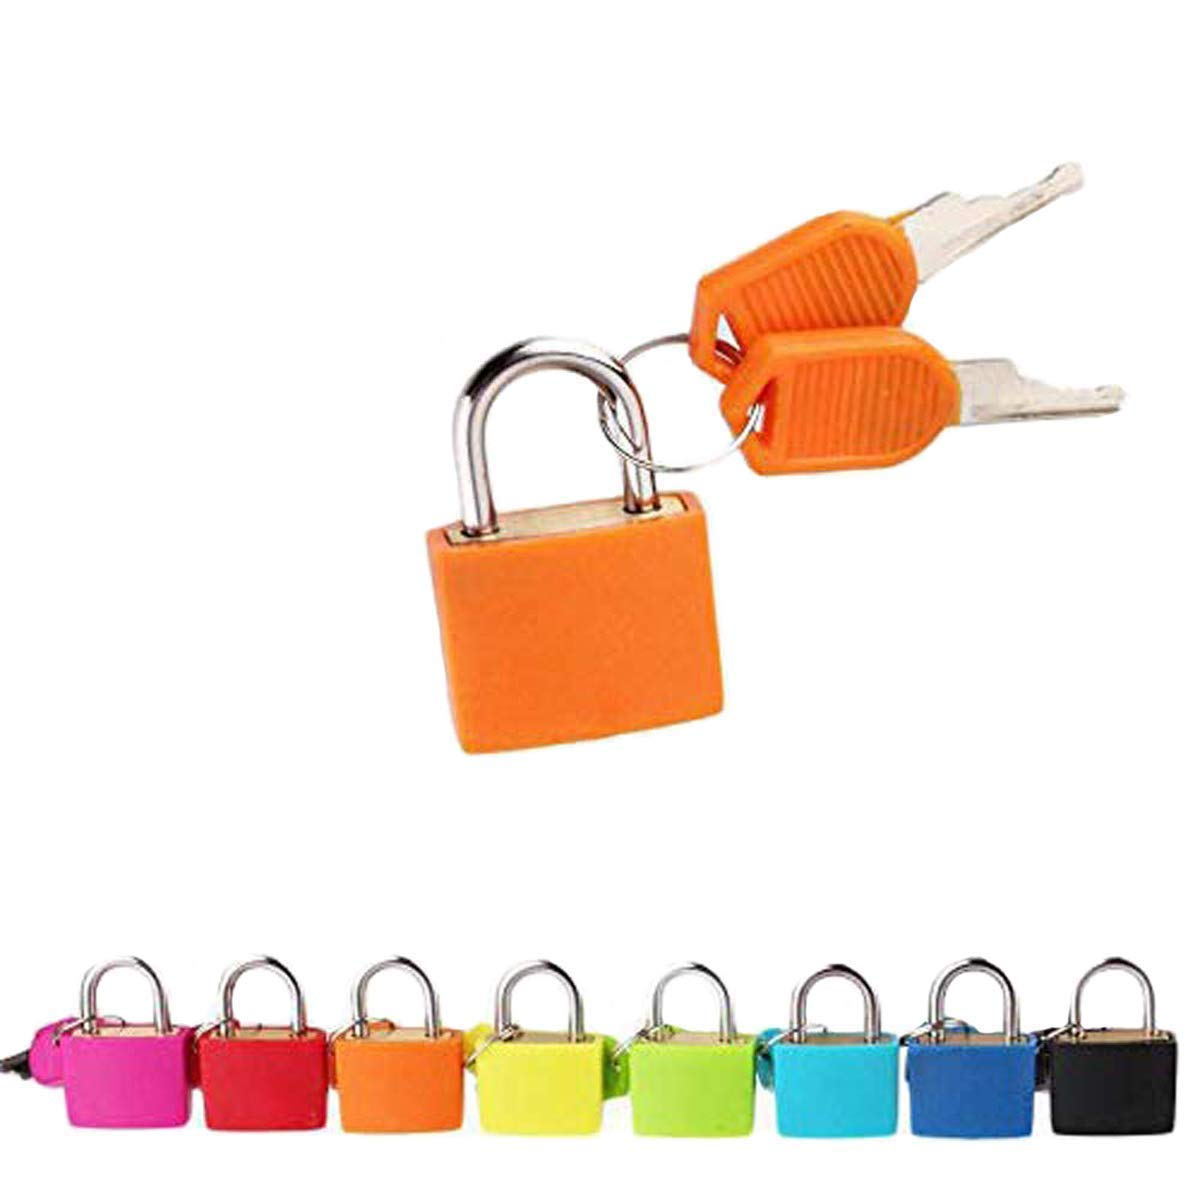 Padlock Security Lock Applies to Lockers Backpacks Luggage Computer Bags Toolbox and Other Colorful Colors are Easy to distinguish (8 per Pack)